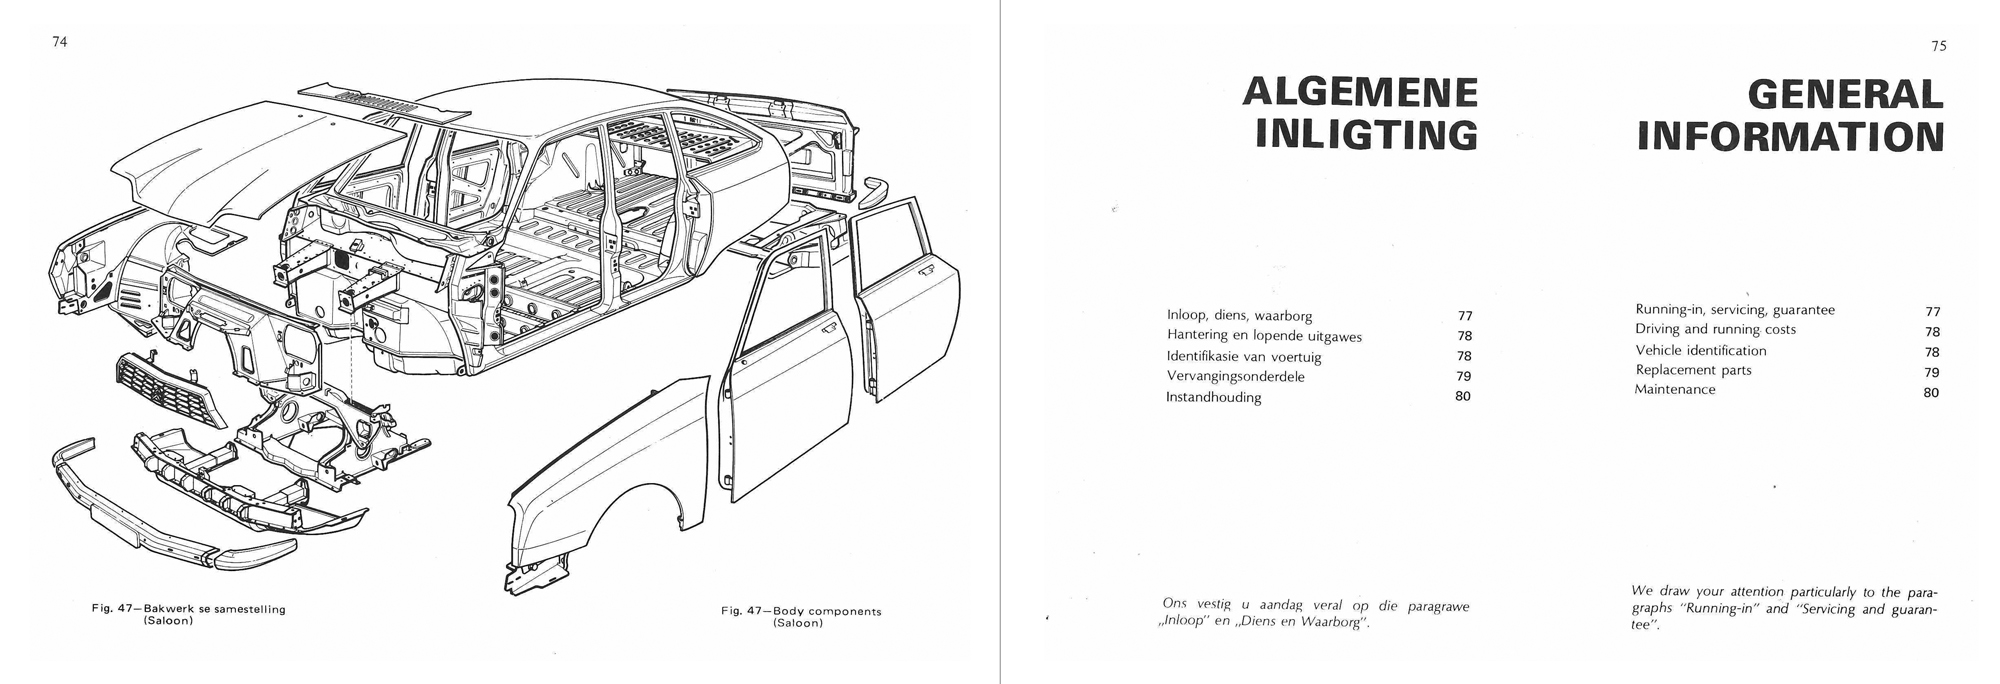 1977 South African Citroën GS owner's manual